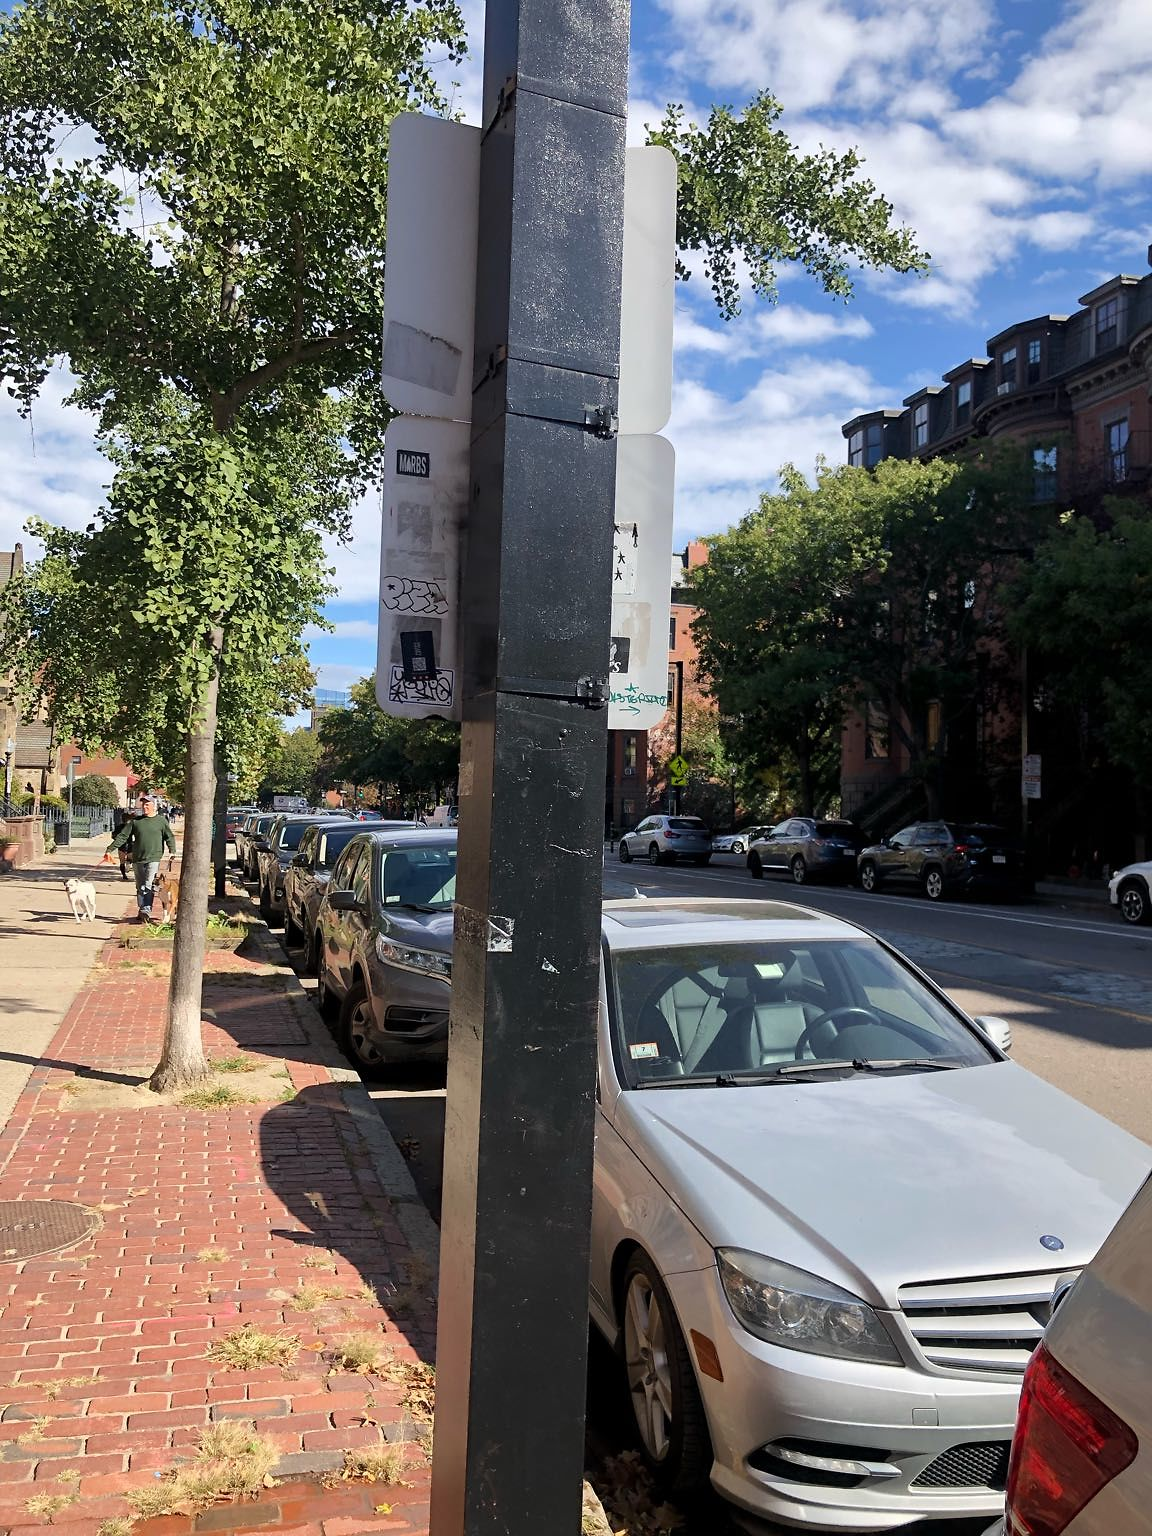 From 570-221 Columbus Ave, both sides of street, there are multiple street signs with graffiti (stickers and paint) on the back and front of signs. We need a sweep of the street; attached is an example